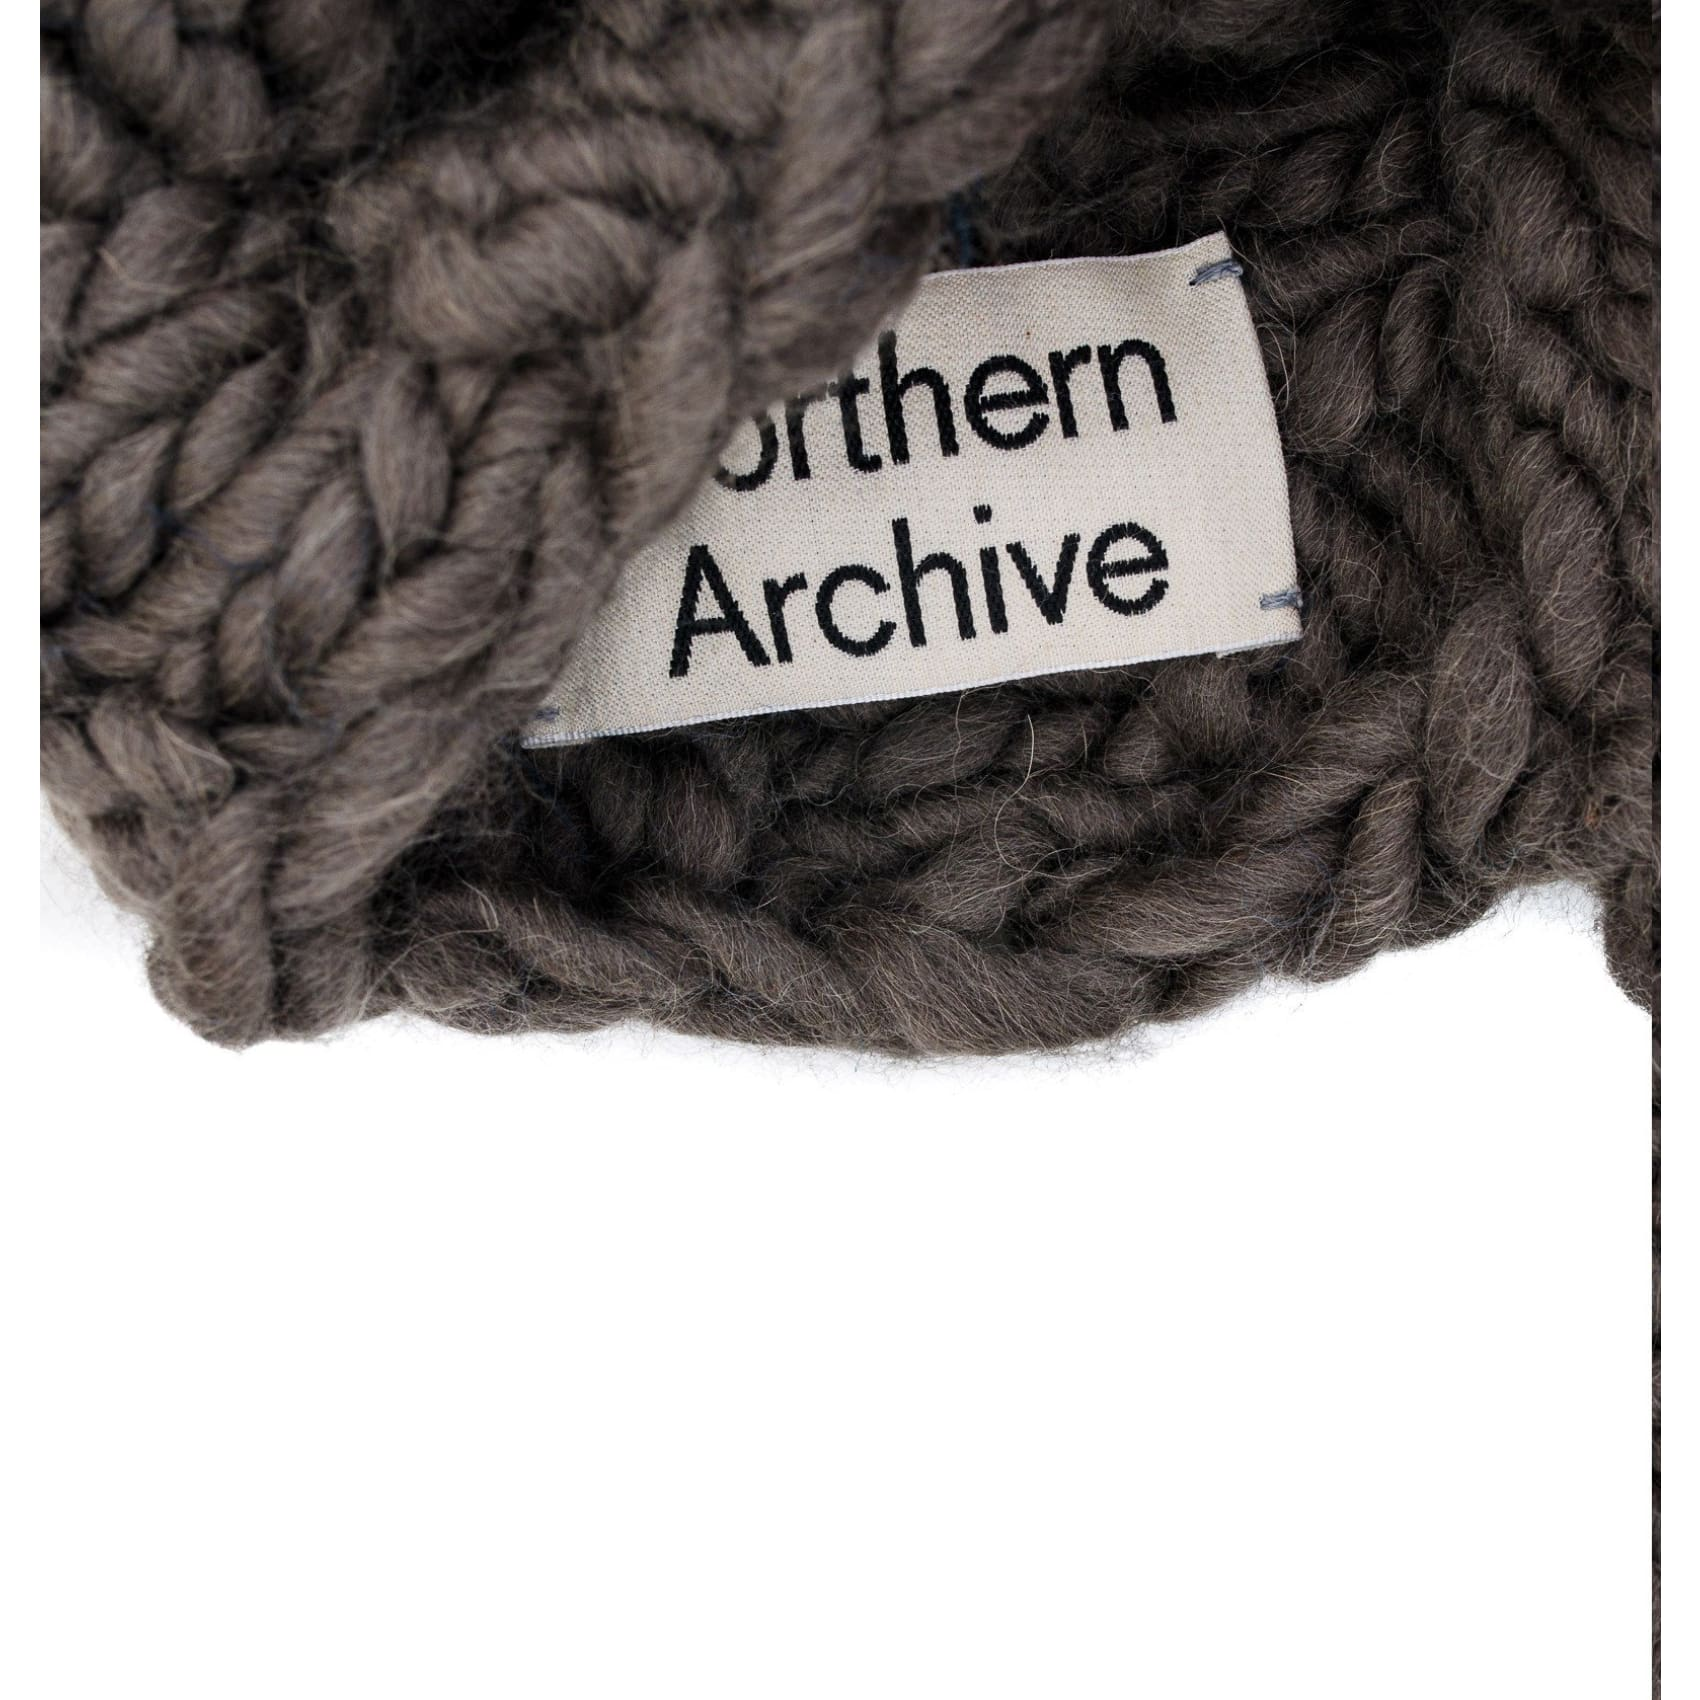 Northern Archive Hand Knitted Alpaca Wool Tube Scarf